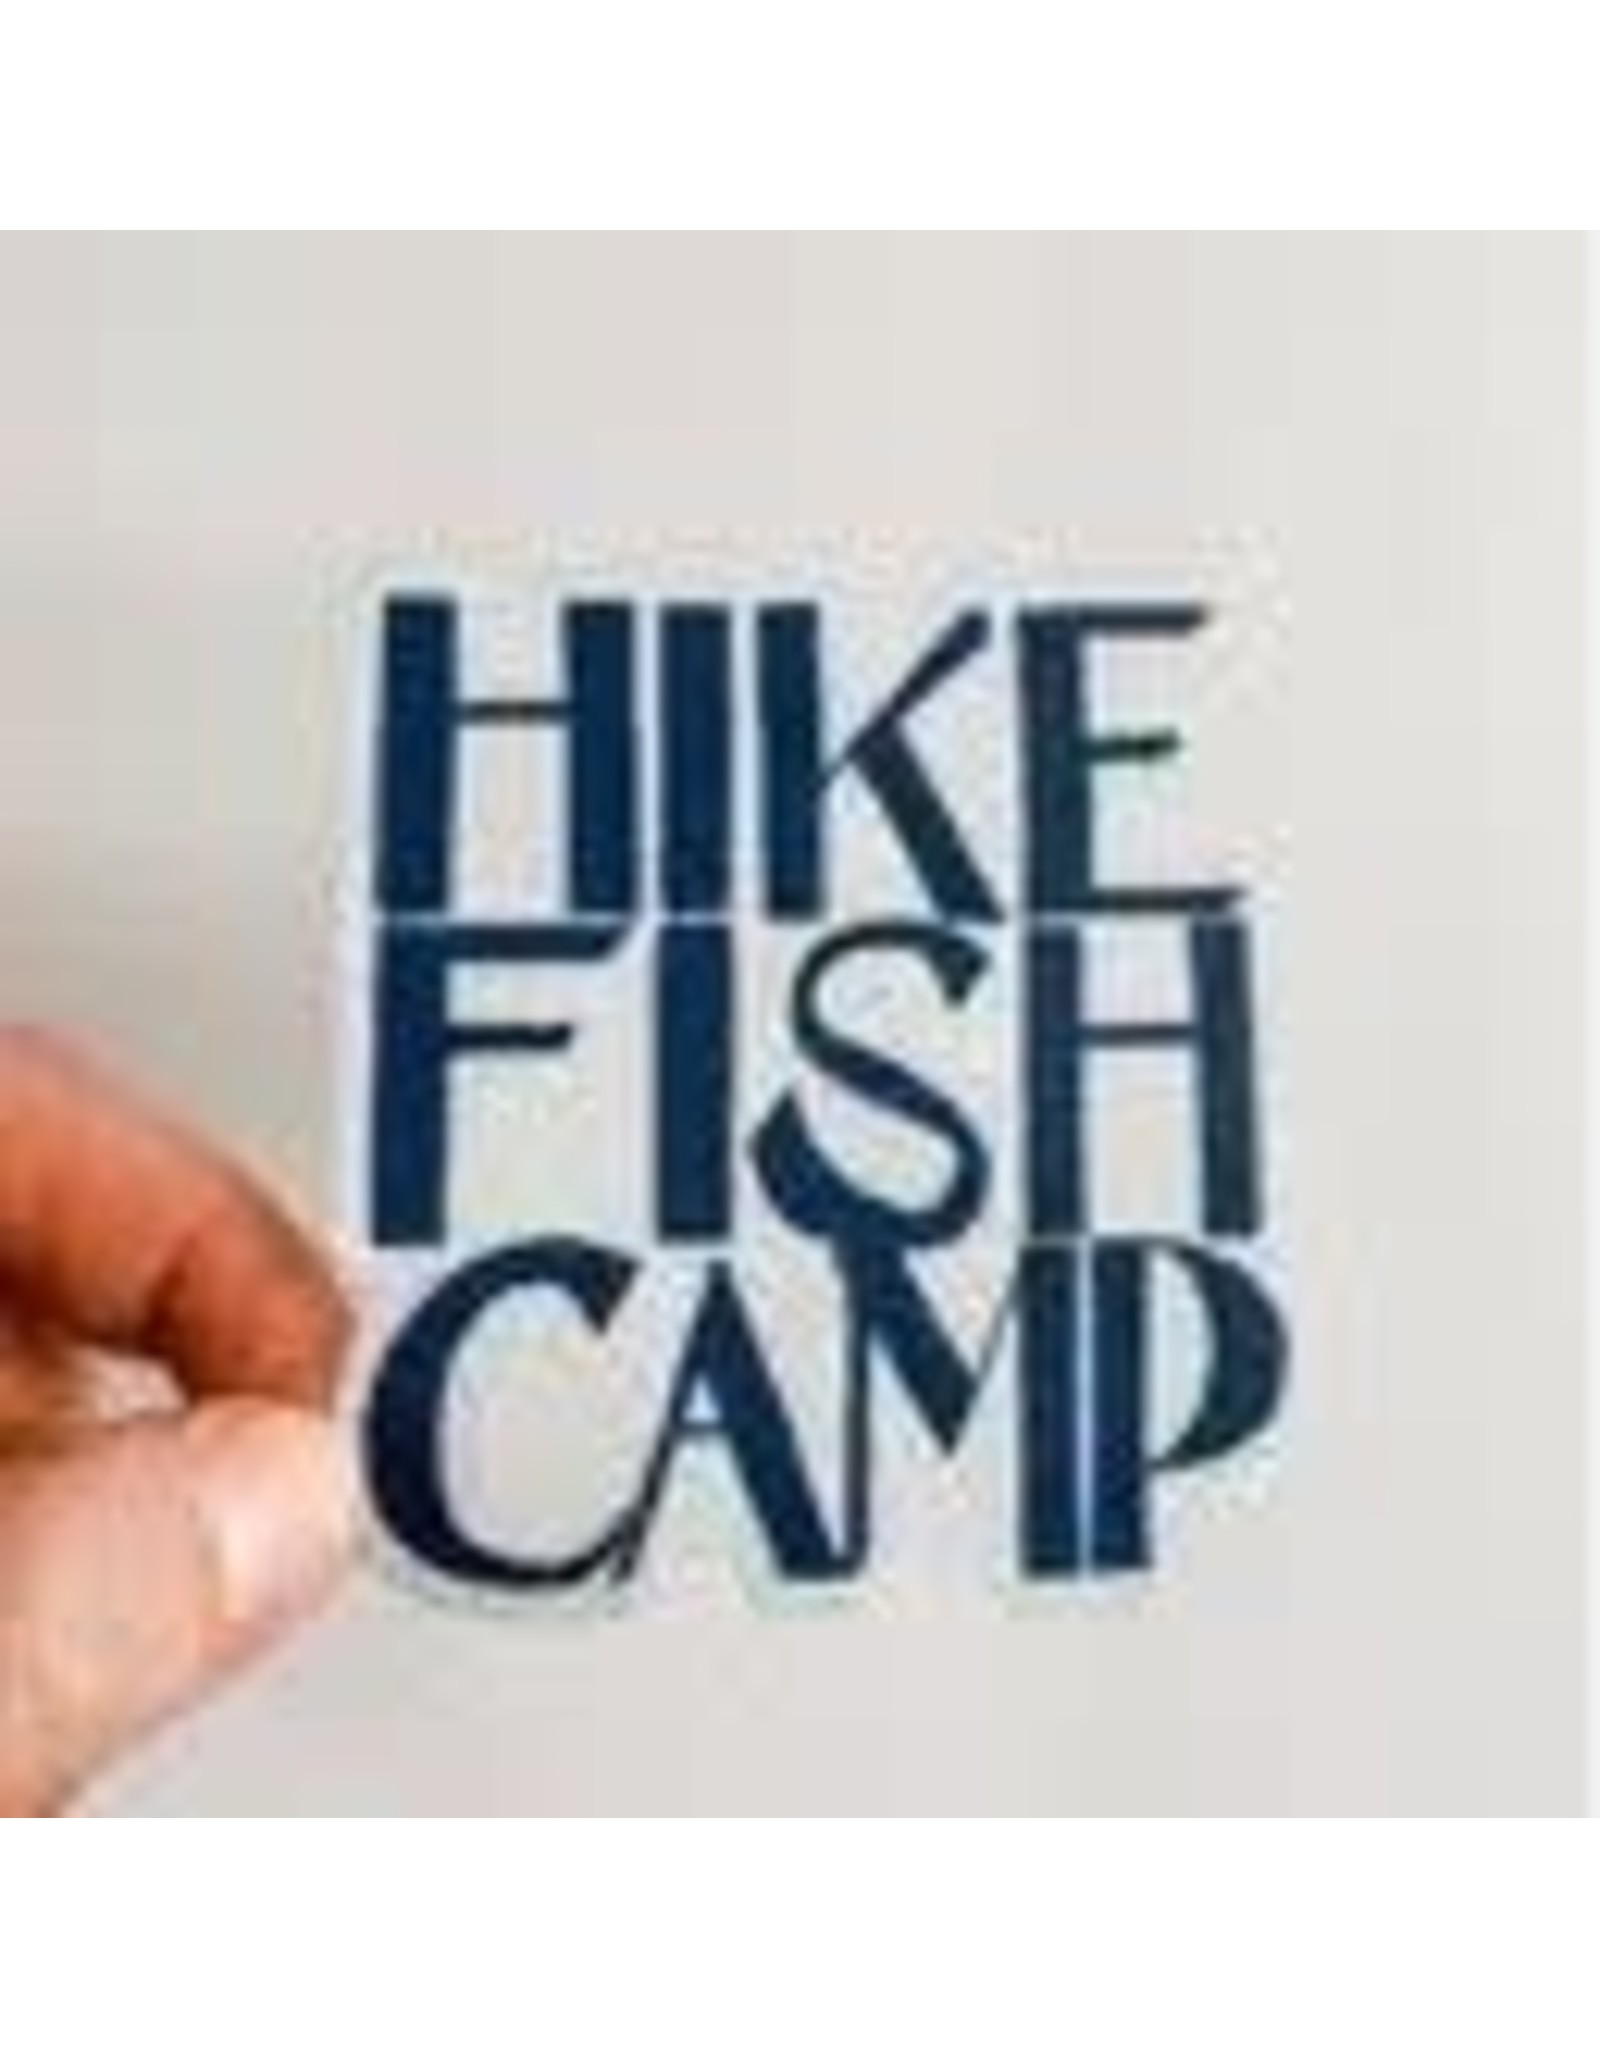 WILDFLOWER PAPER COMPANY HIKE FISH CAMP BLUE STICKER